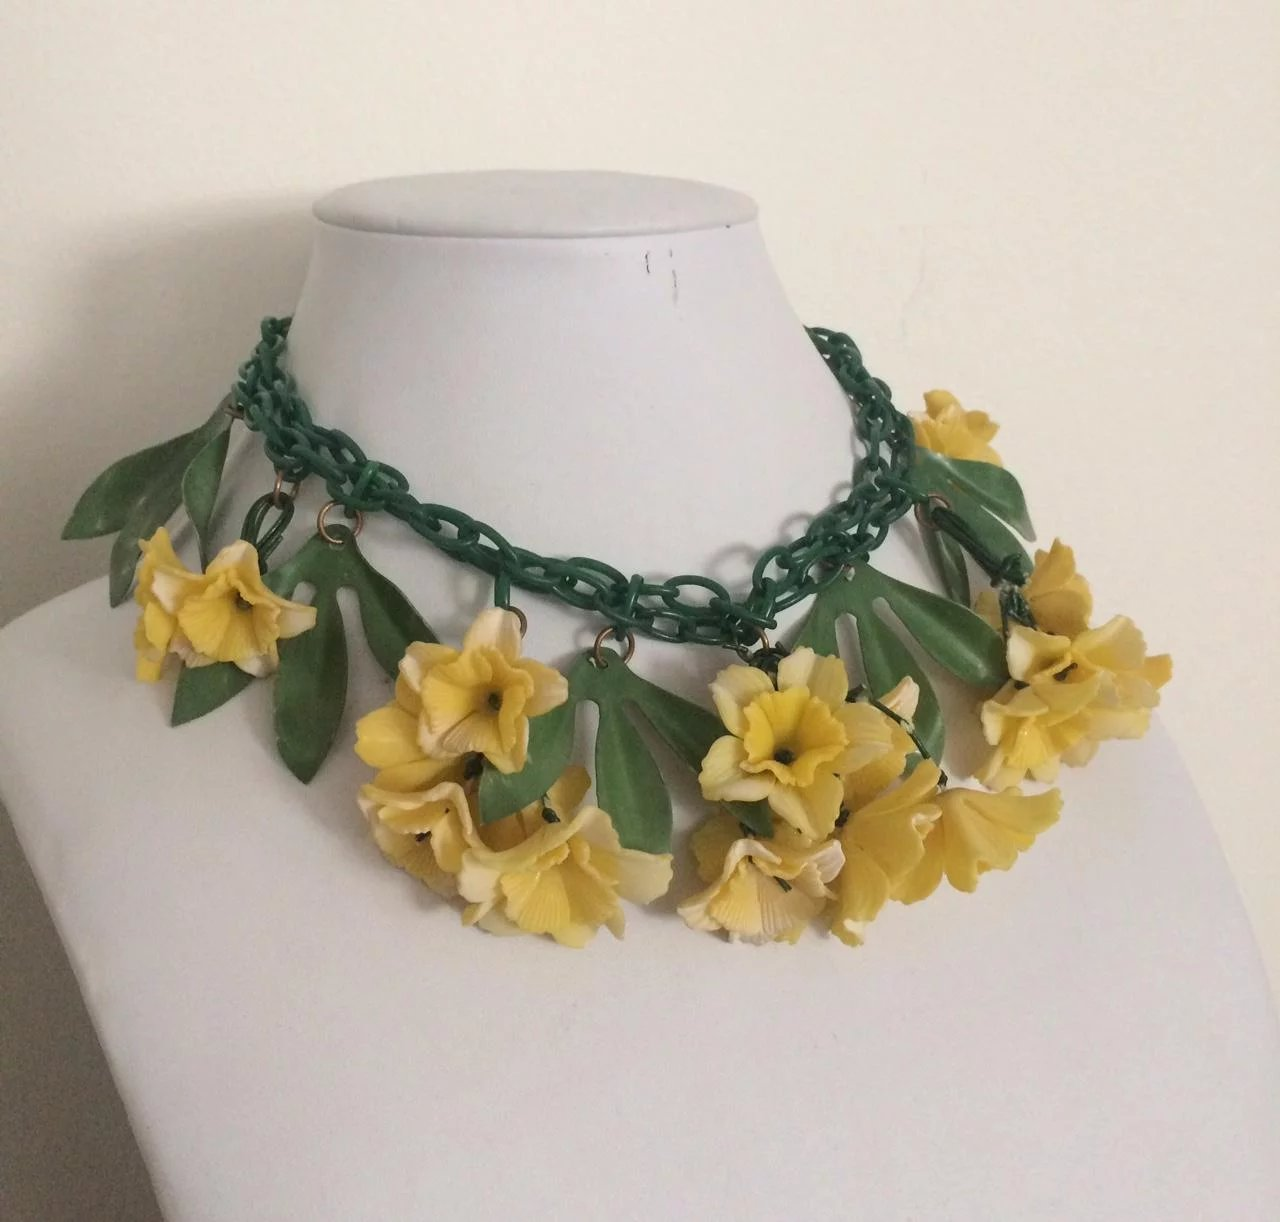 Yellow Celluloid Flower Necklace From The 1920s A Connoisseurs